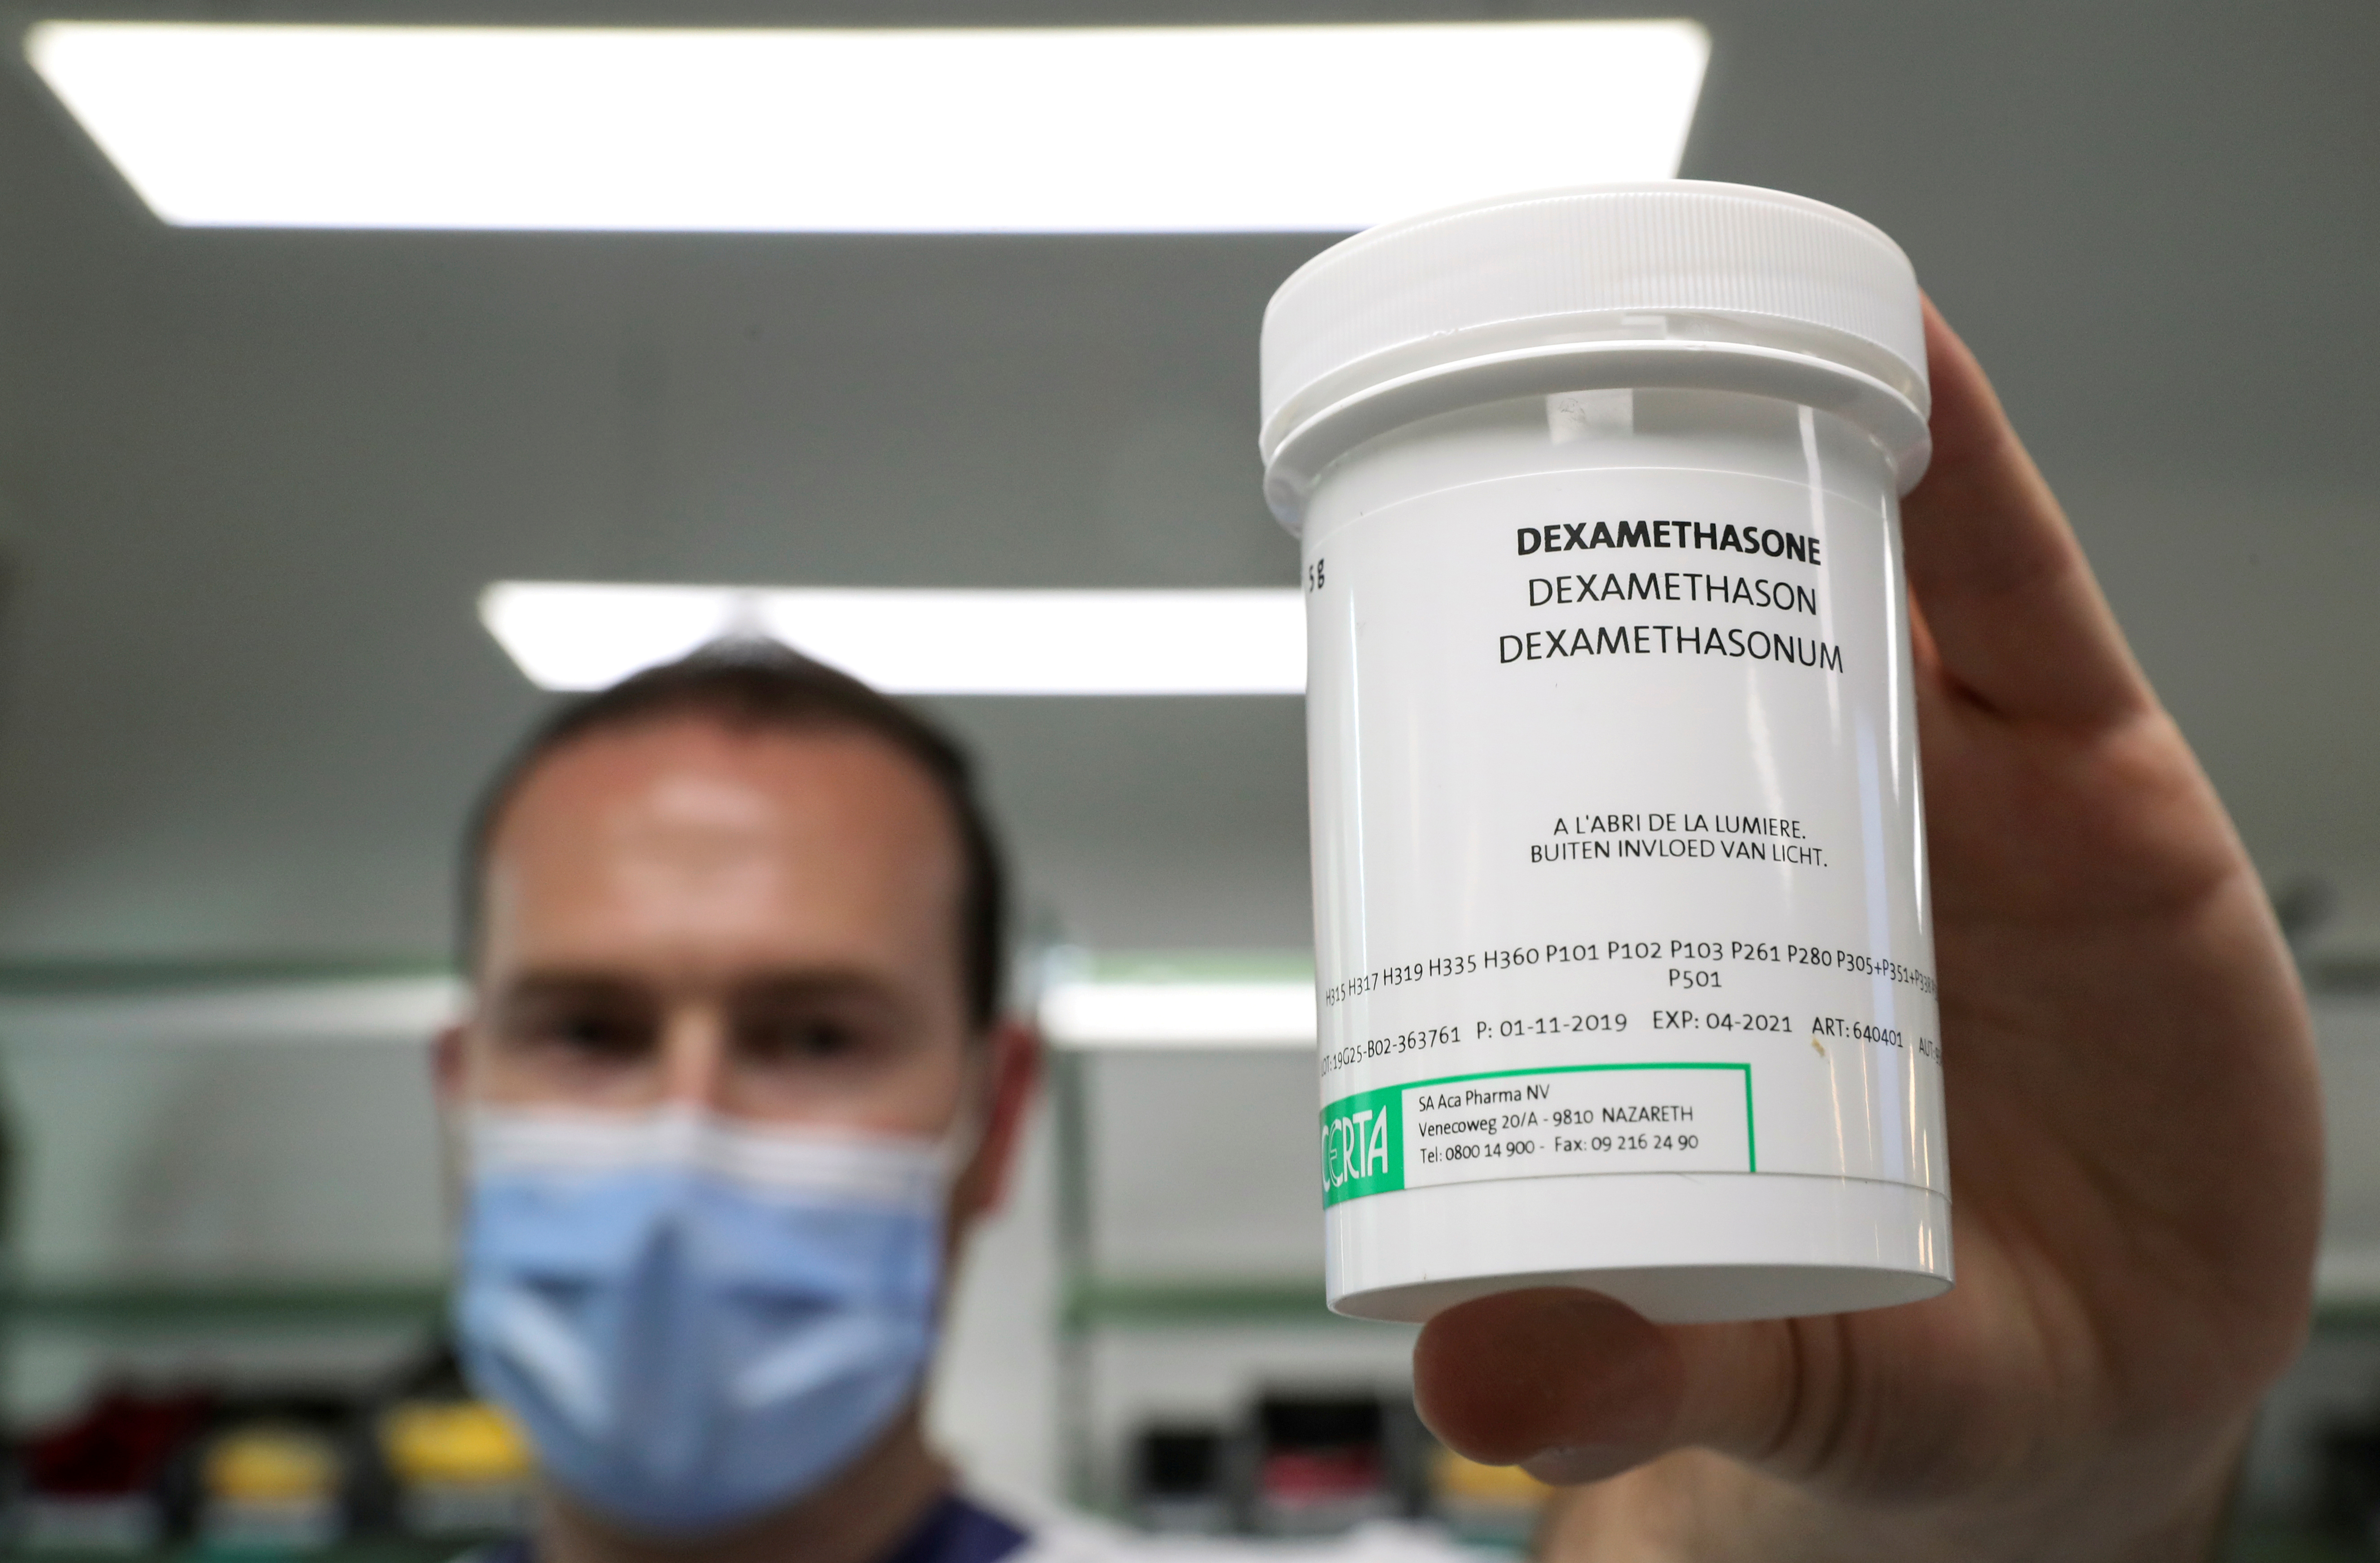 FILE - A pharmacist displays a box of Dexamethasone at the Erasme Hospital amid the coronavirus disease (COVID-19) outbreak, in Brussels, Belgium, June 16, 2020. Photo: Reuters